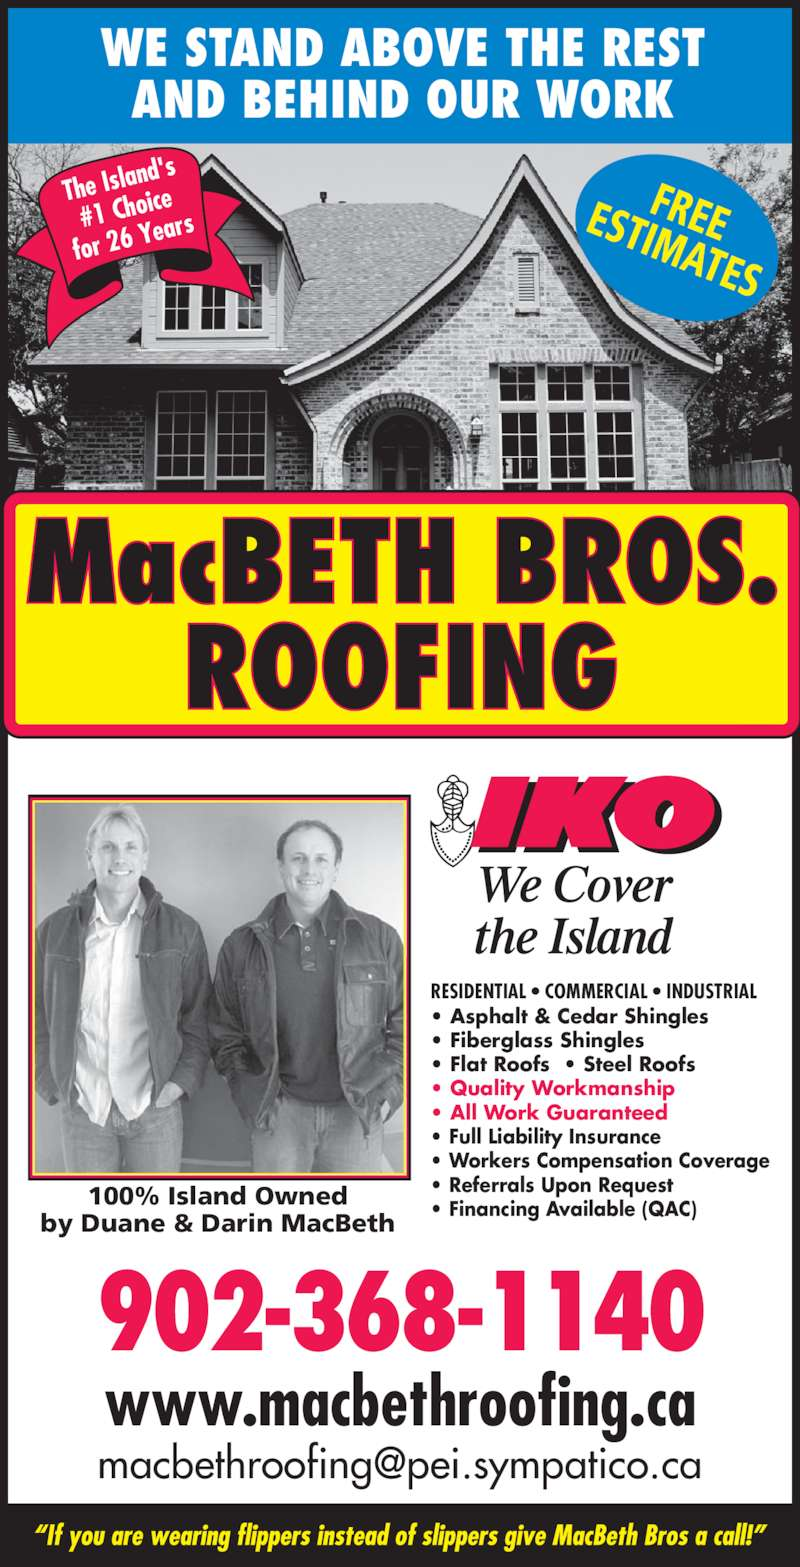 MacBeth Bros Roofing (902-368-1140) - Display Ad - WE STAND ABOVE THE REST AND BEHIND OUR WORK FREEESTIMATES • Asphalt & Cedar Shingles • Fiberglass Shingles • Flat Roofs  • Steel Roofs • Quality Workmanship • All Work Guaranteed • Full Liability Insurance • Workers Compensation Coverage • Referrals Upon Request • Financing Available (QAC) RESIDENTIAL • COMMERCIAL • INDUSTRIAL 100% Island Owned by Duane & Darin MacBeth 902-368-1140 www.macbethroofing.ca The Isla nd's #1 Choi ce for 26 Y ears